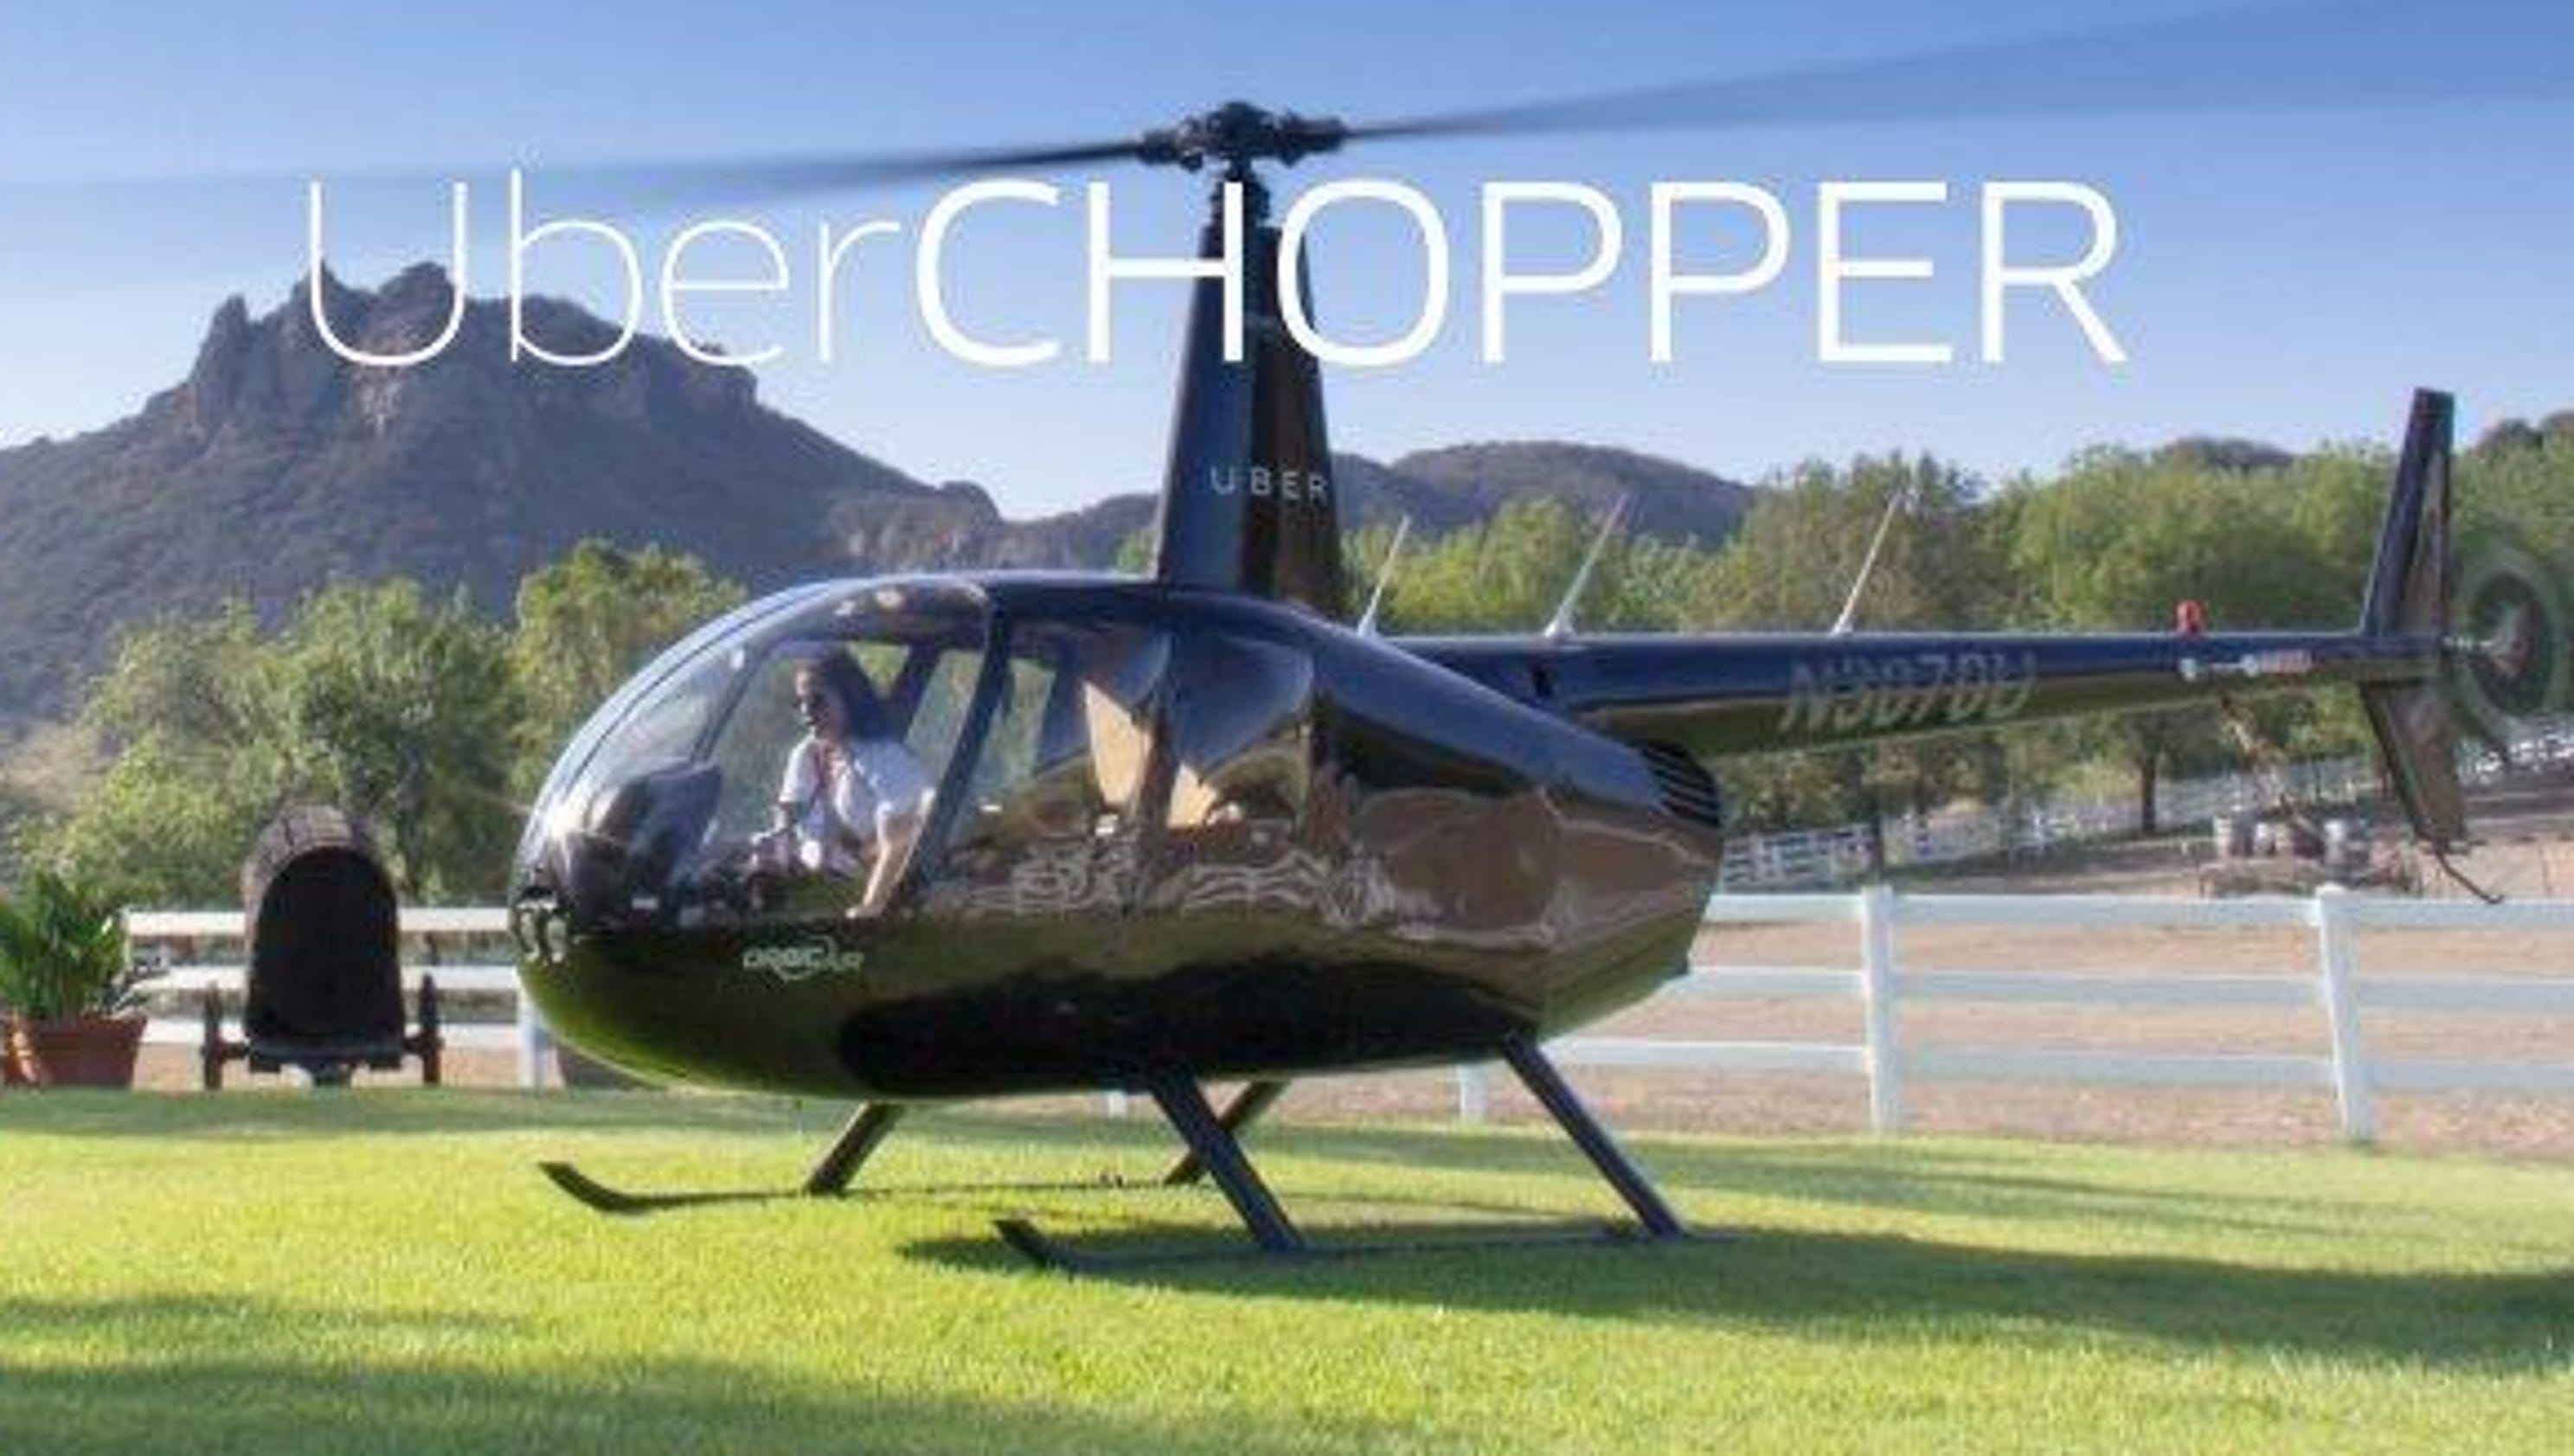 Uber offers helicopter rides to Bonnaroo for $1,500 on street ride, glider ride, 3d ride, airplane ride, snowmobile ride, jet ride, skateboard ride, train ride, toy parachute drop ride,